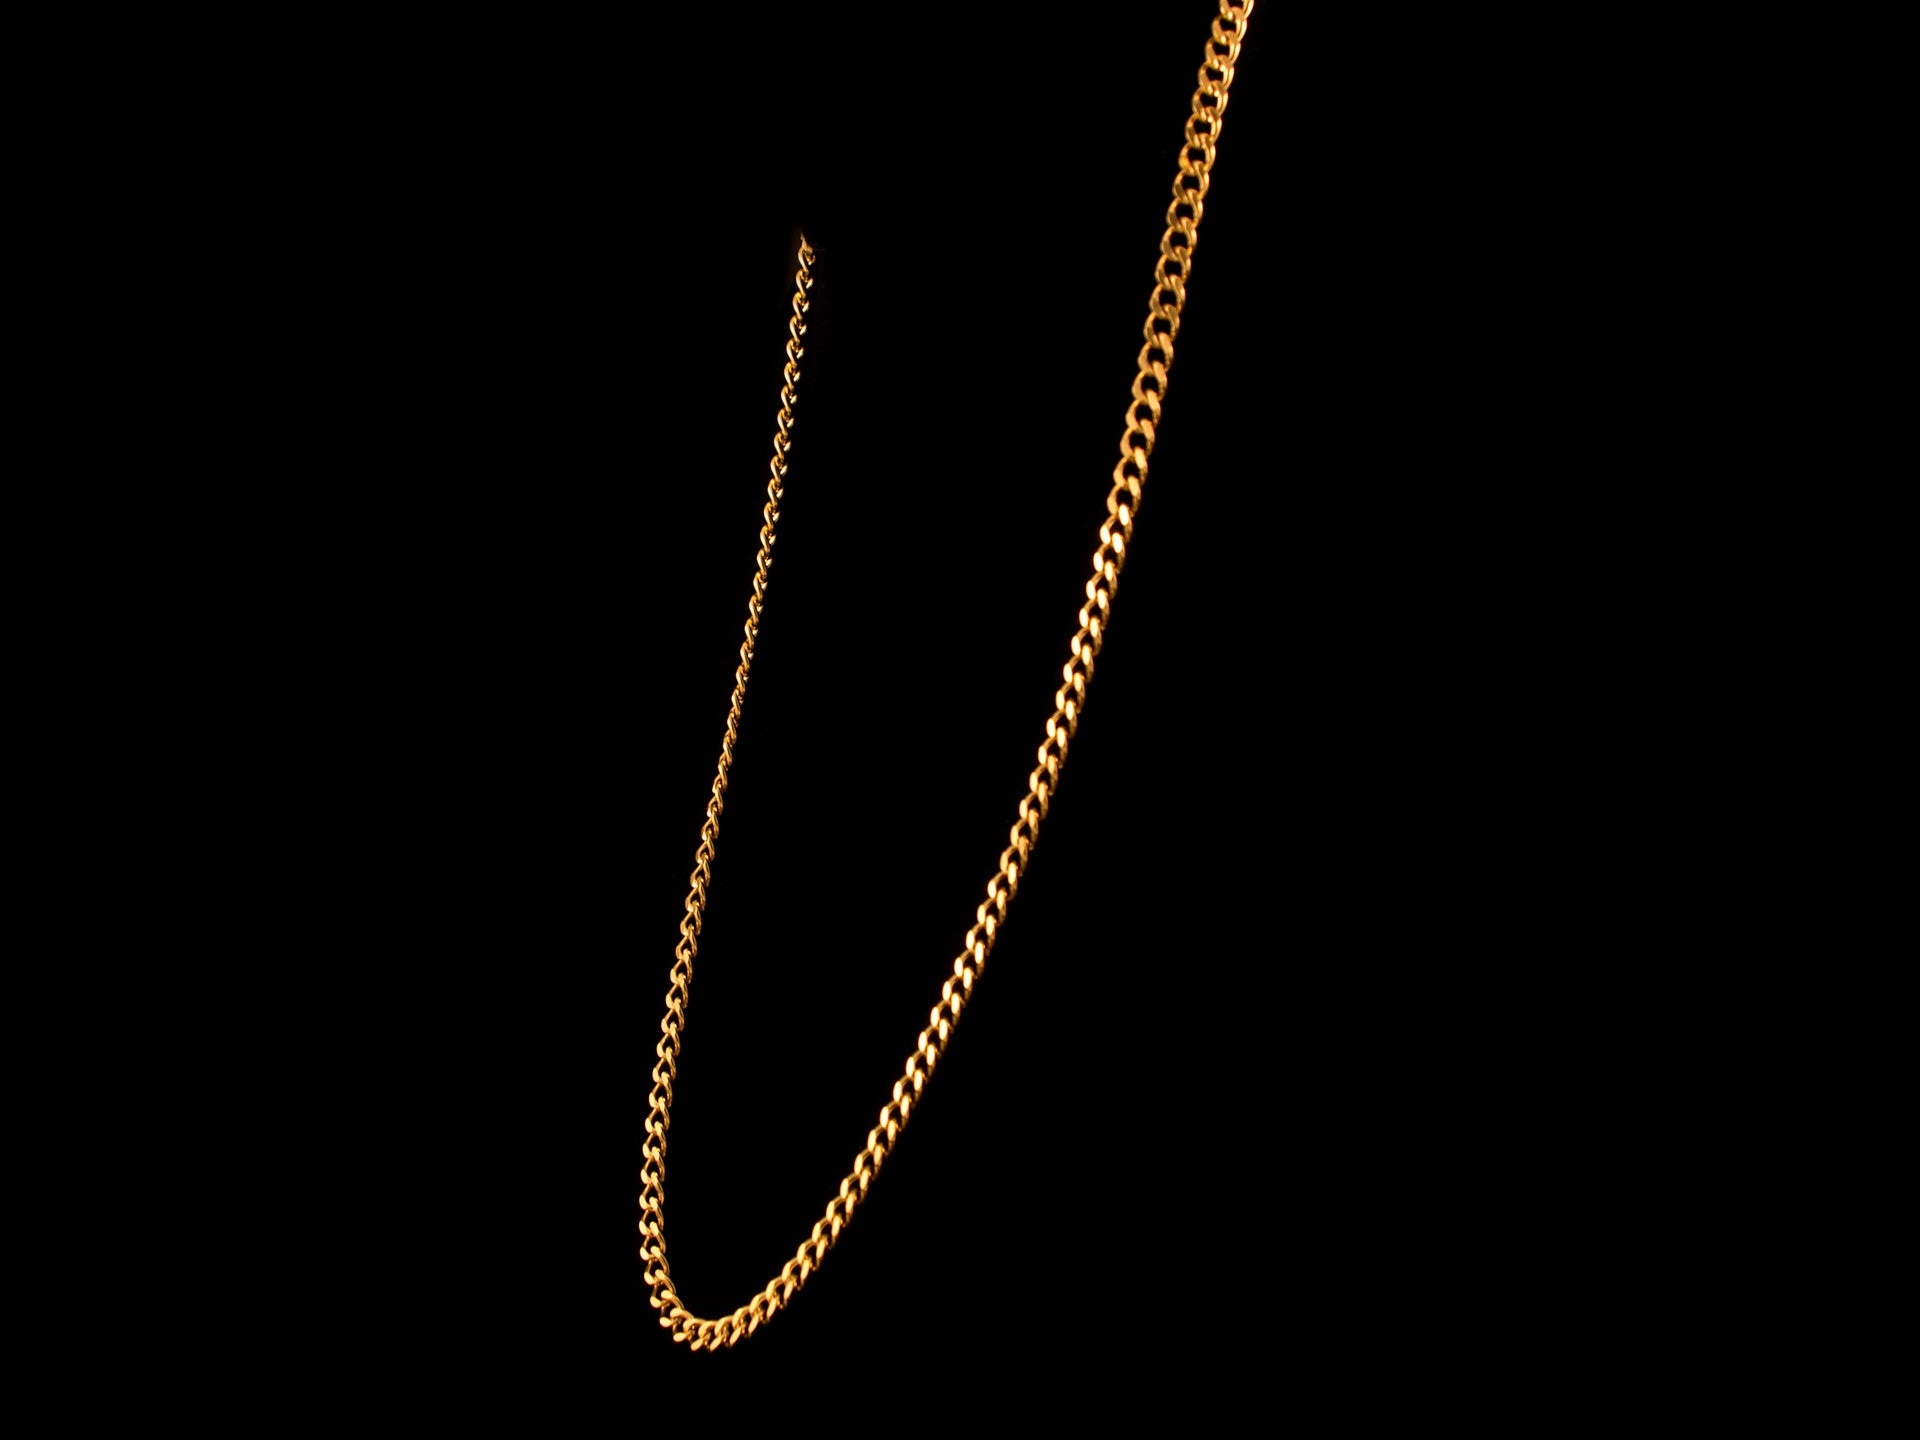 6mm Cuban Link Necklace